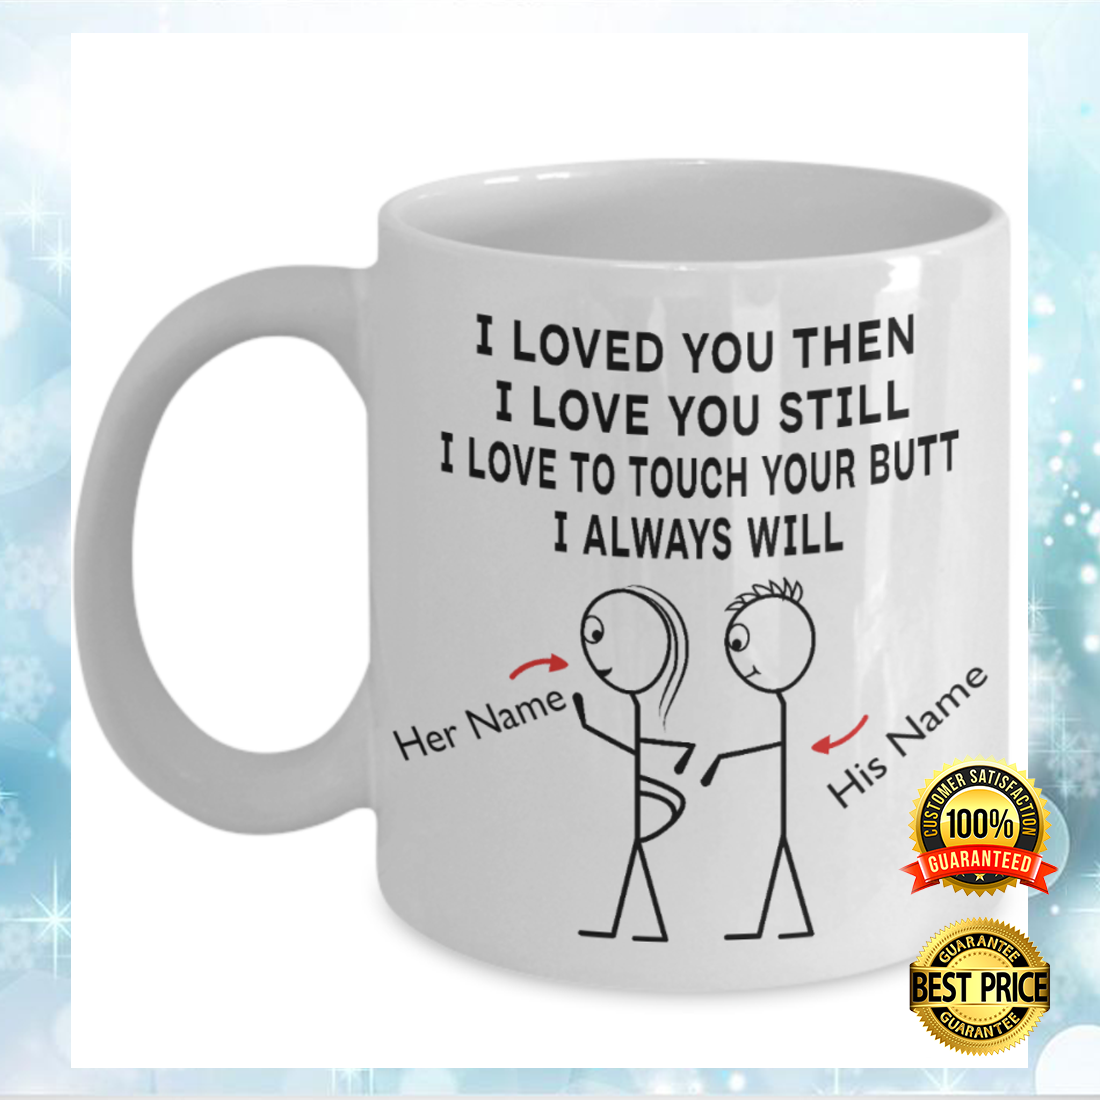 Personalized i loved you then i love you still i love to touch your butt i always will mug 4